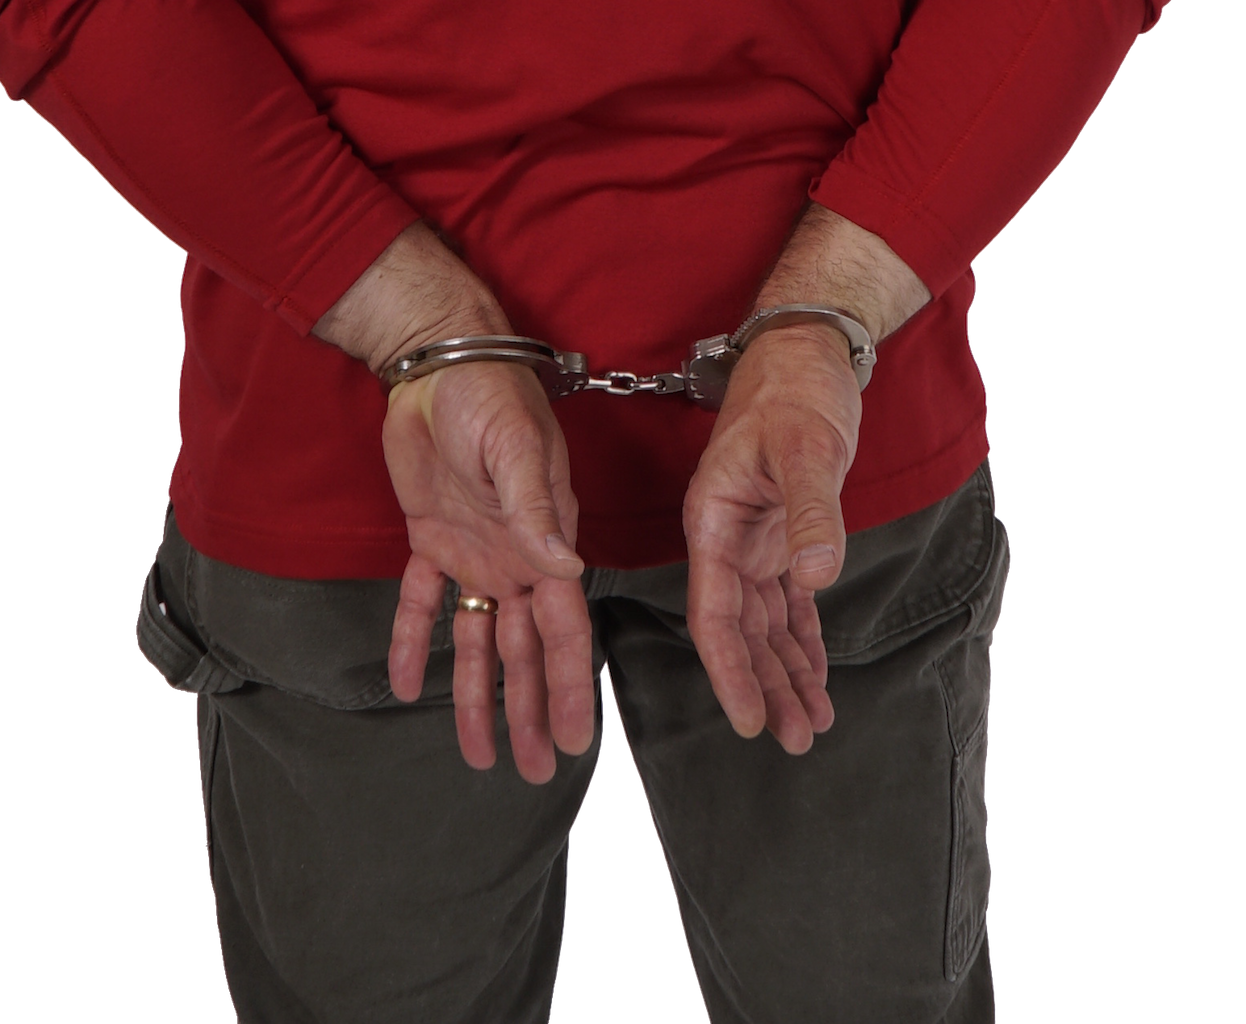 Handcuff clipart cuffed hand. Path handcuffing technique training